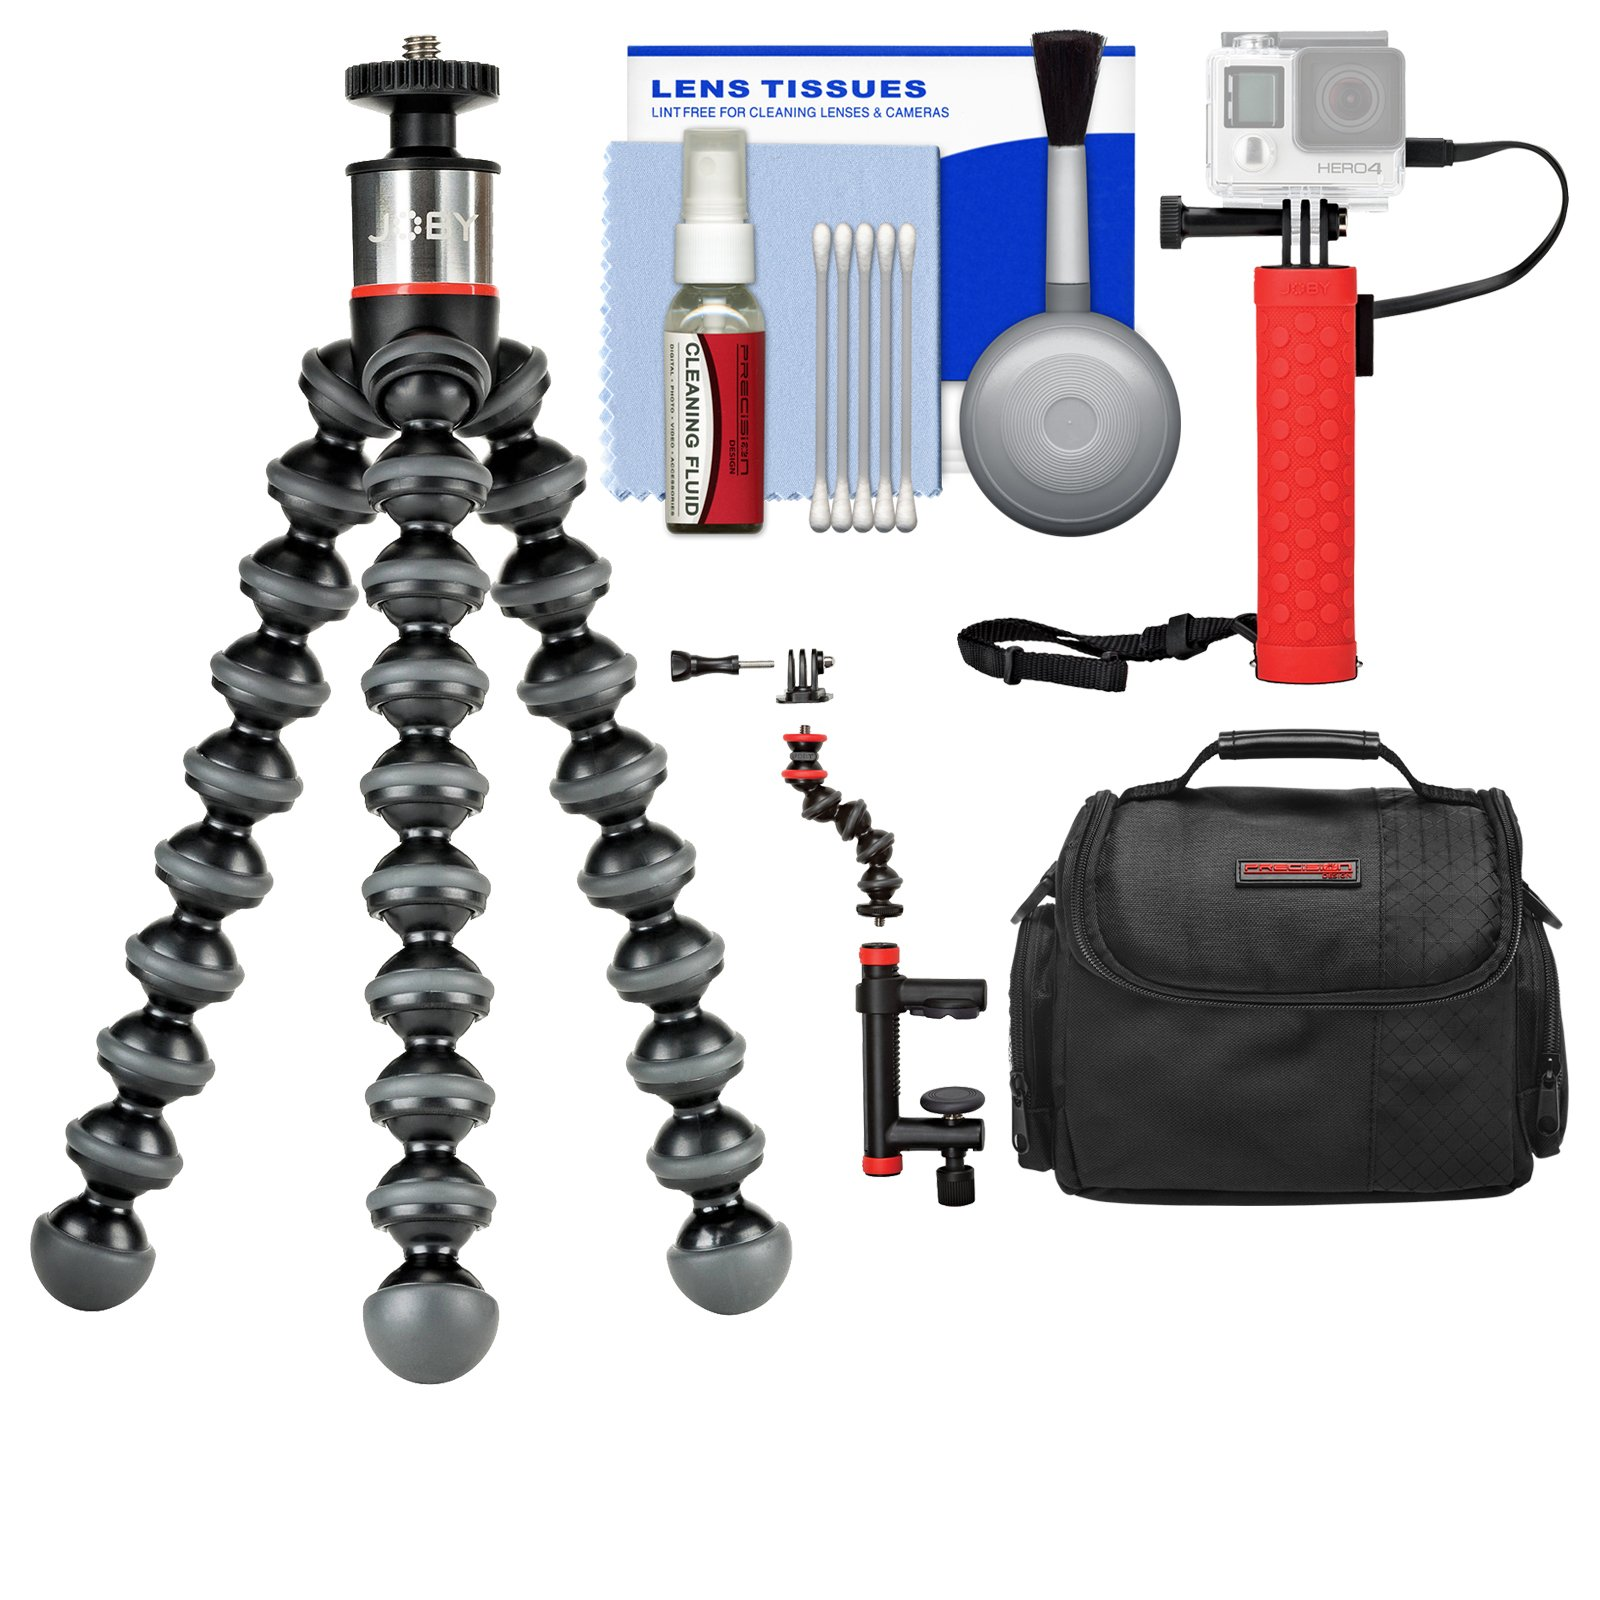 Joby GorillaPod 500 Flexible Tripod with Case + Hand Grip + Action Camera Clamp + Kit by Joby